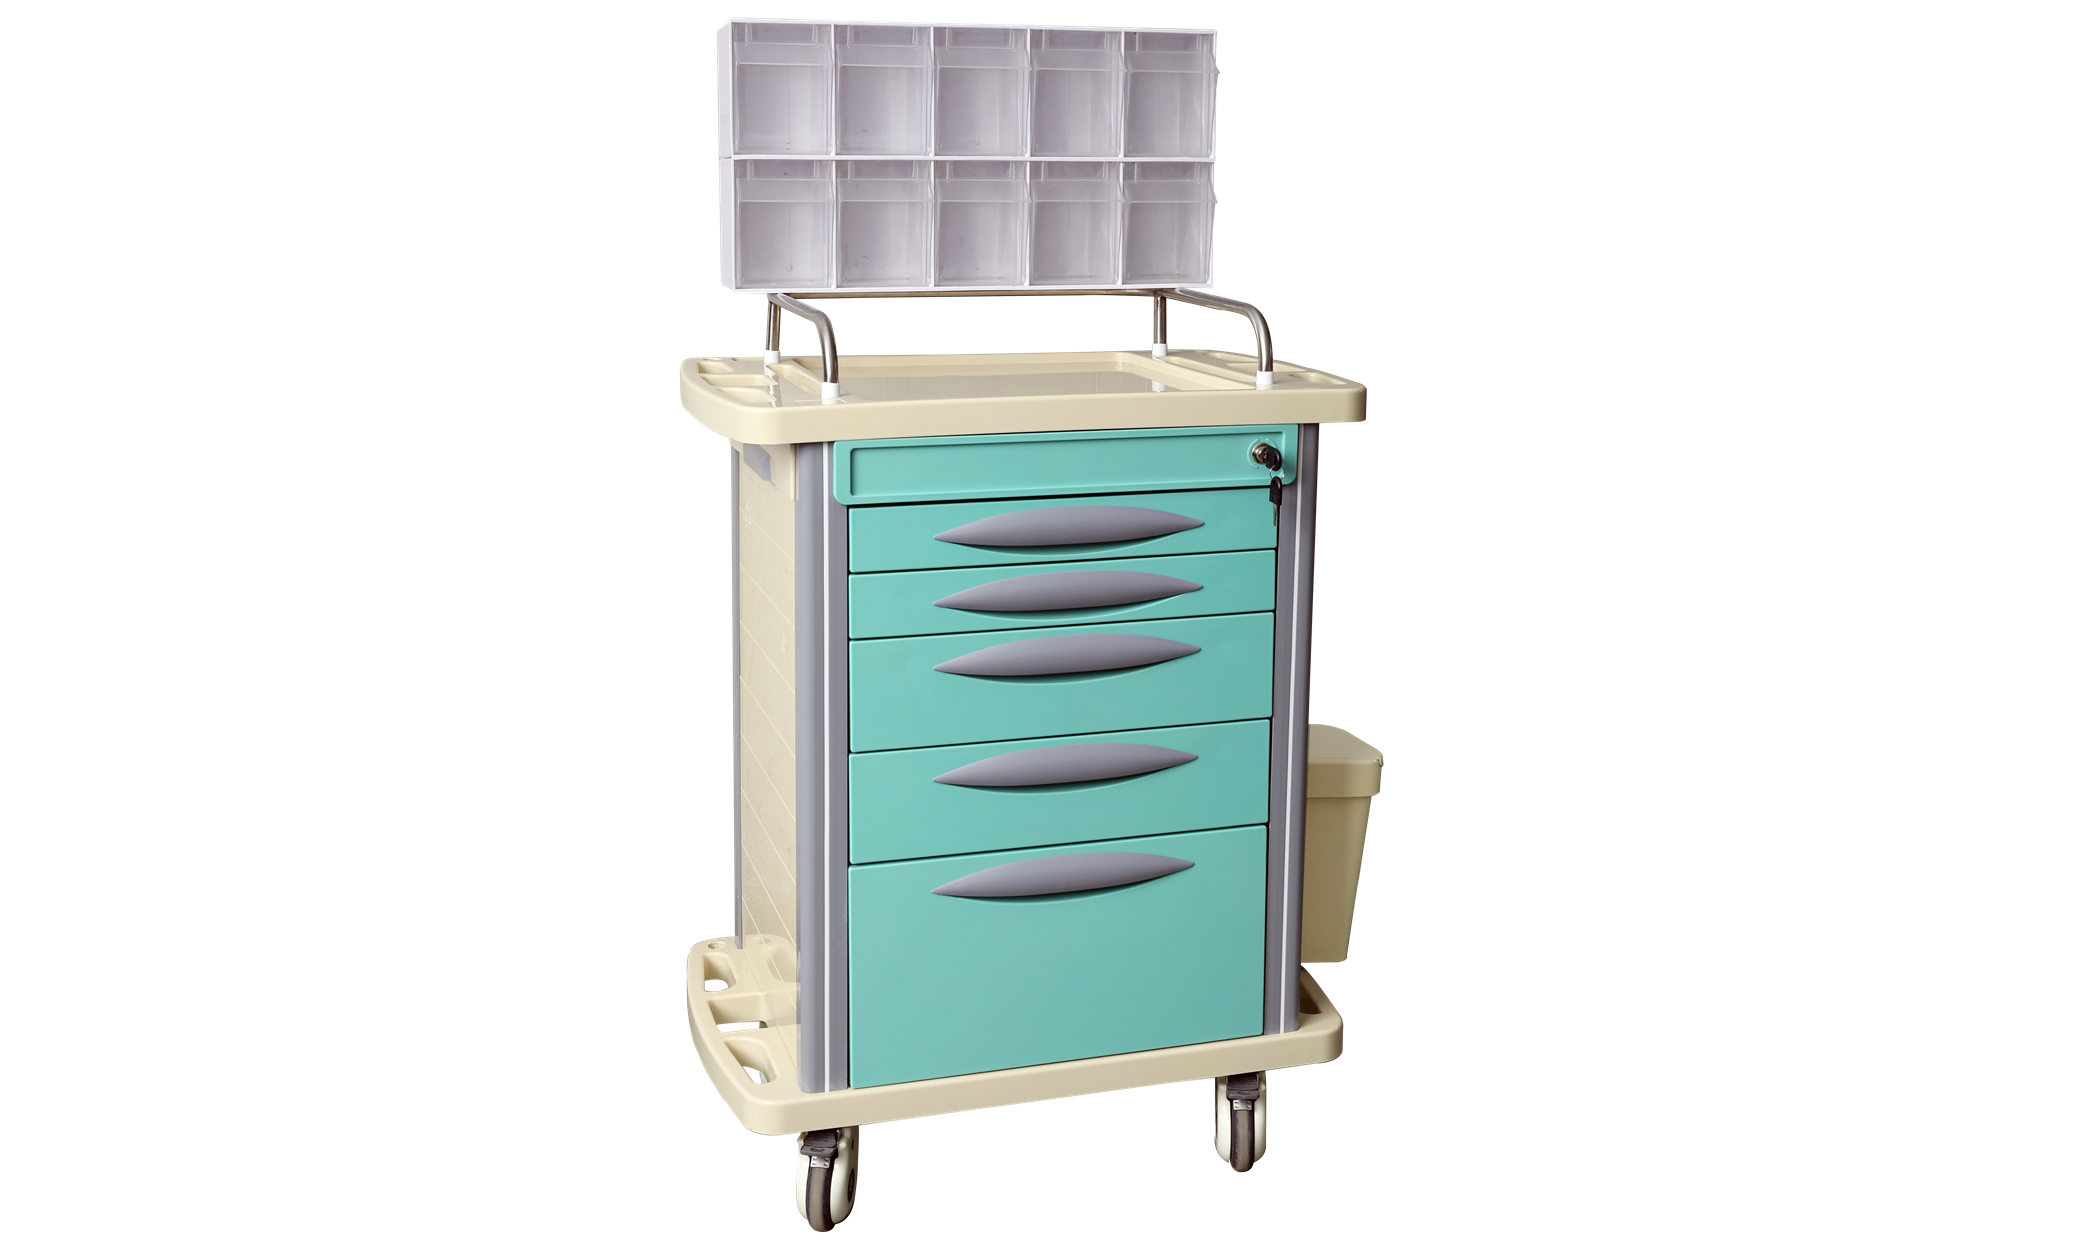 DW-AT0017 Anesthesia trolley